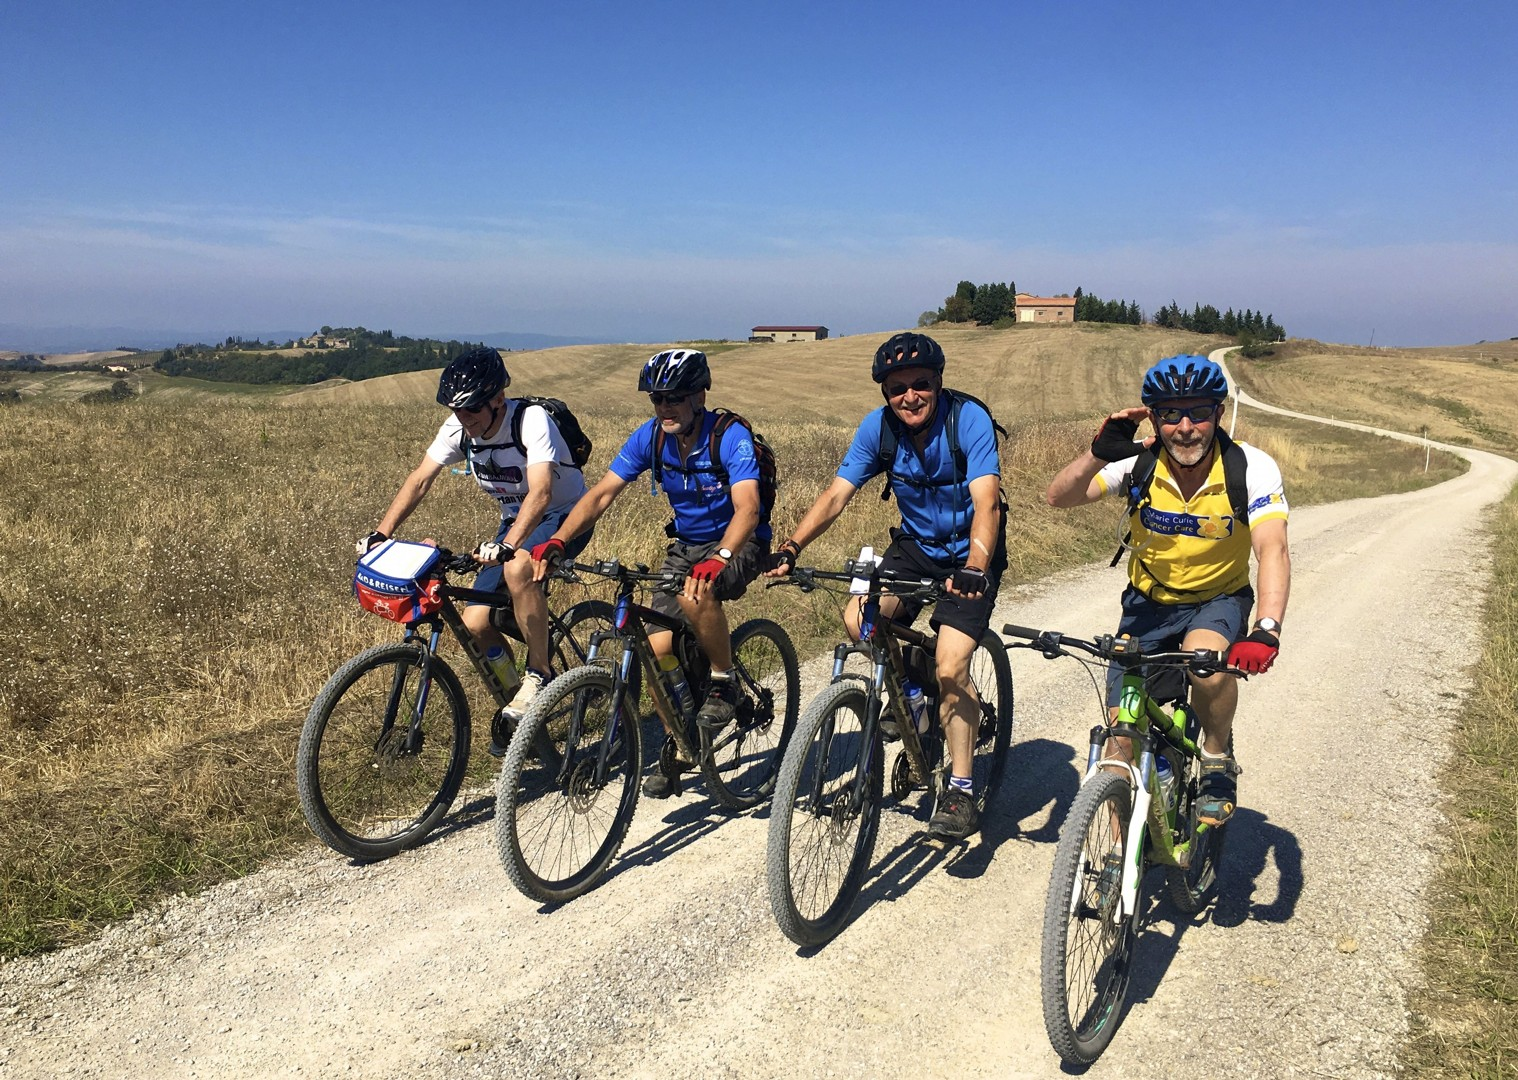 mountain-biking-holiday-italy-tuscany.jpg - Italy - Tuscany - Sacred Routes - Guided Mountain Bike Holiday - Italia Mountain Biking